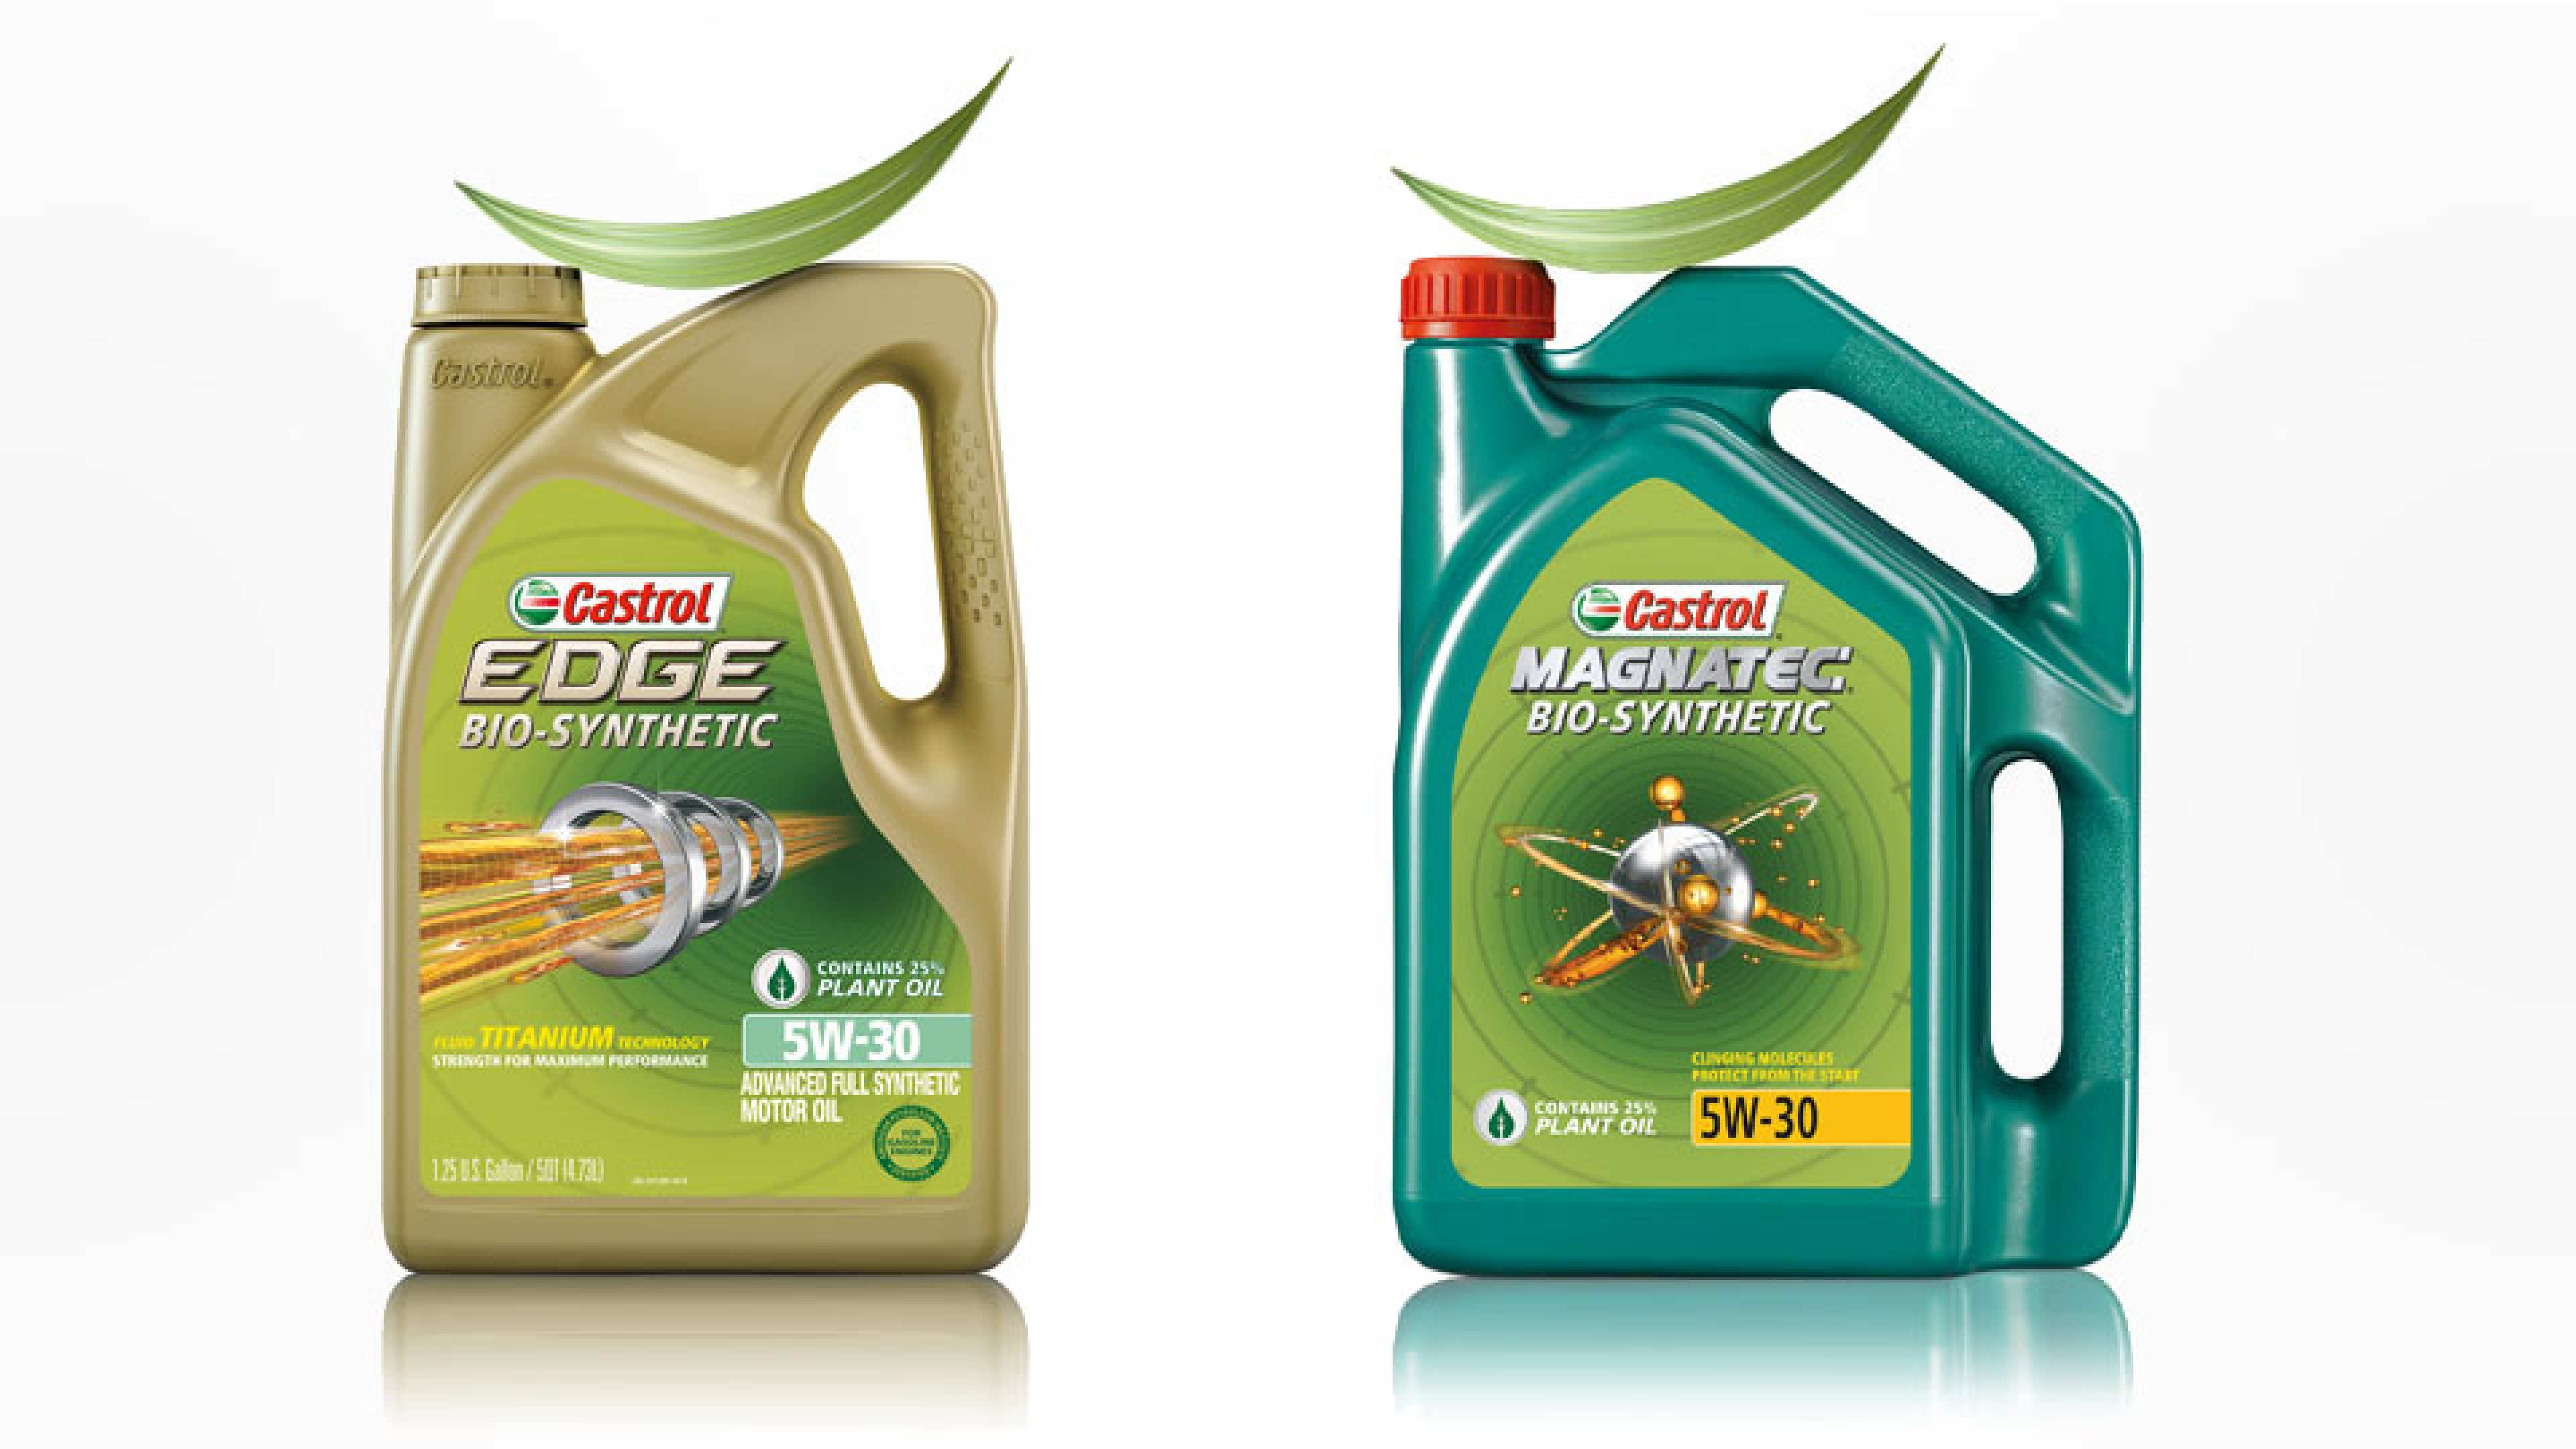 Castrol EDGE BIO-SYNTHETIC and MAGNATEC BIO-SYNTHETIC